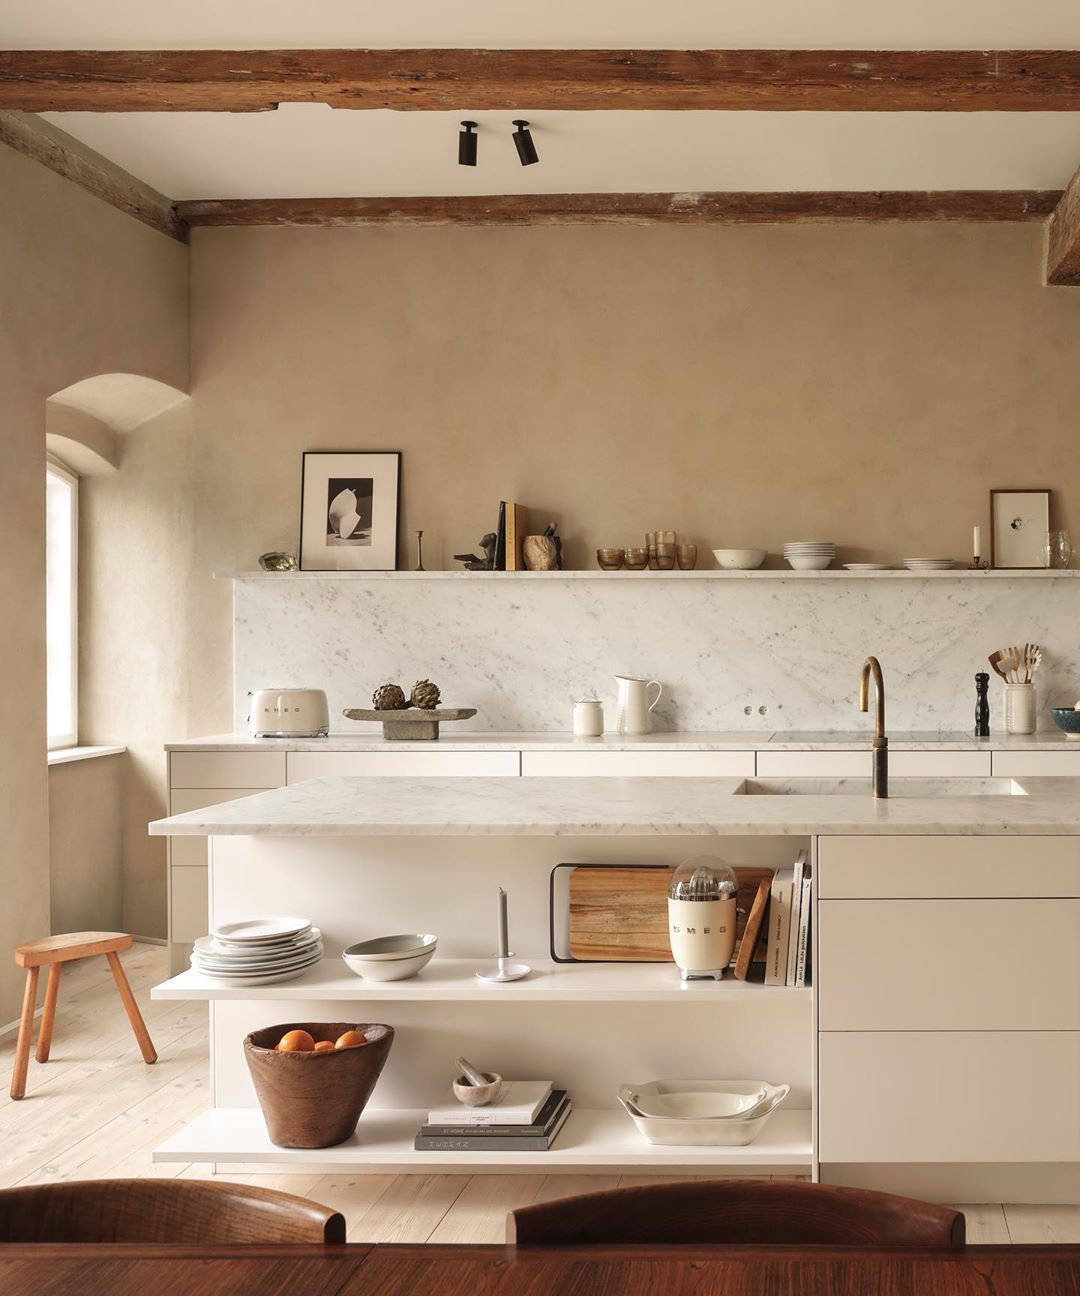 Zara Home's Newest Launch Will Make Your Kitchen Picture-Perfect